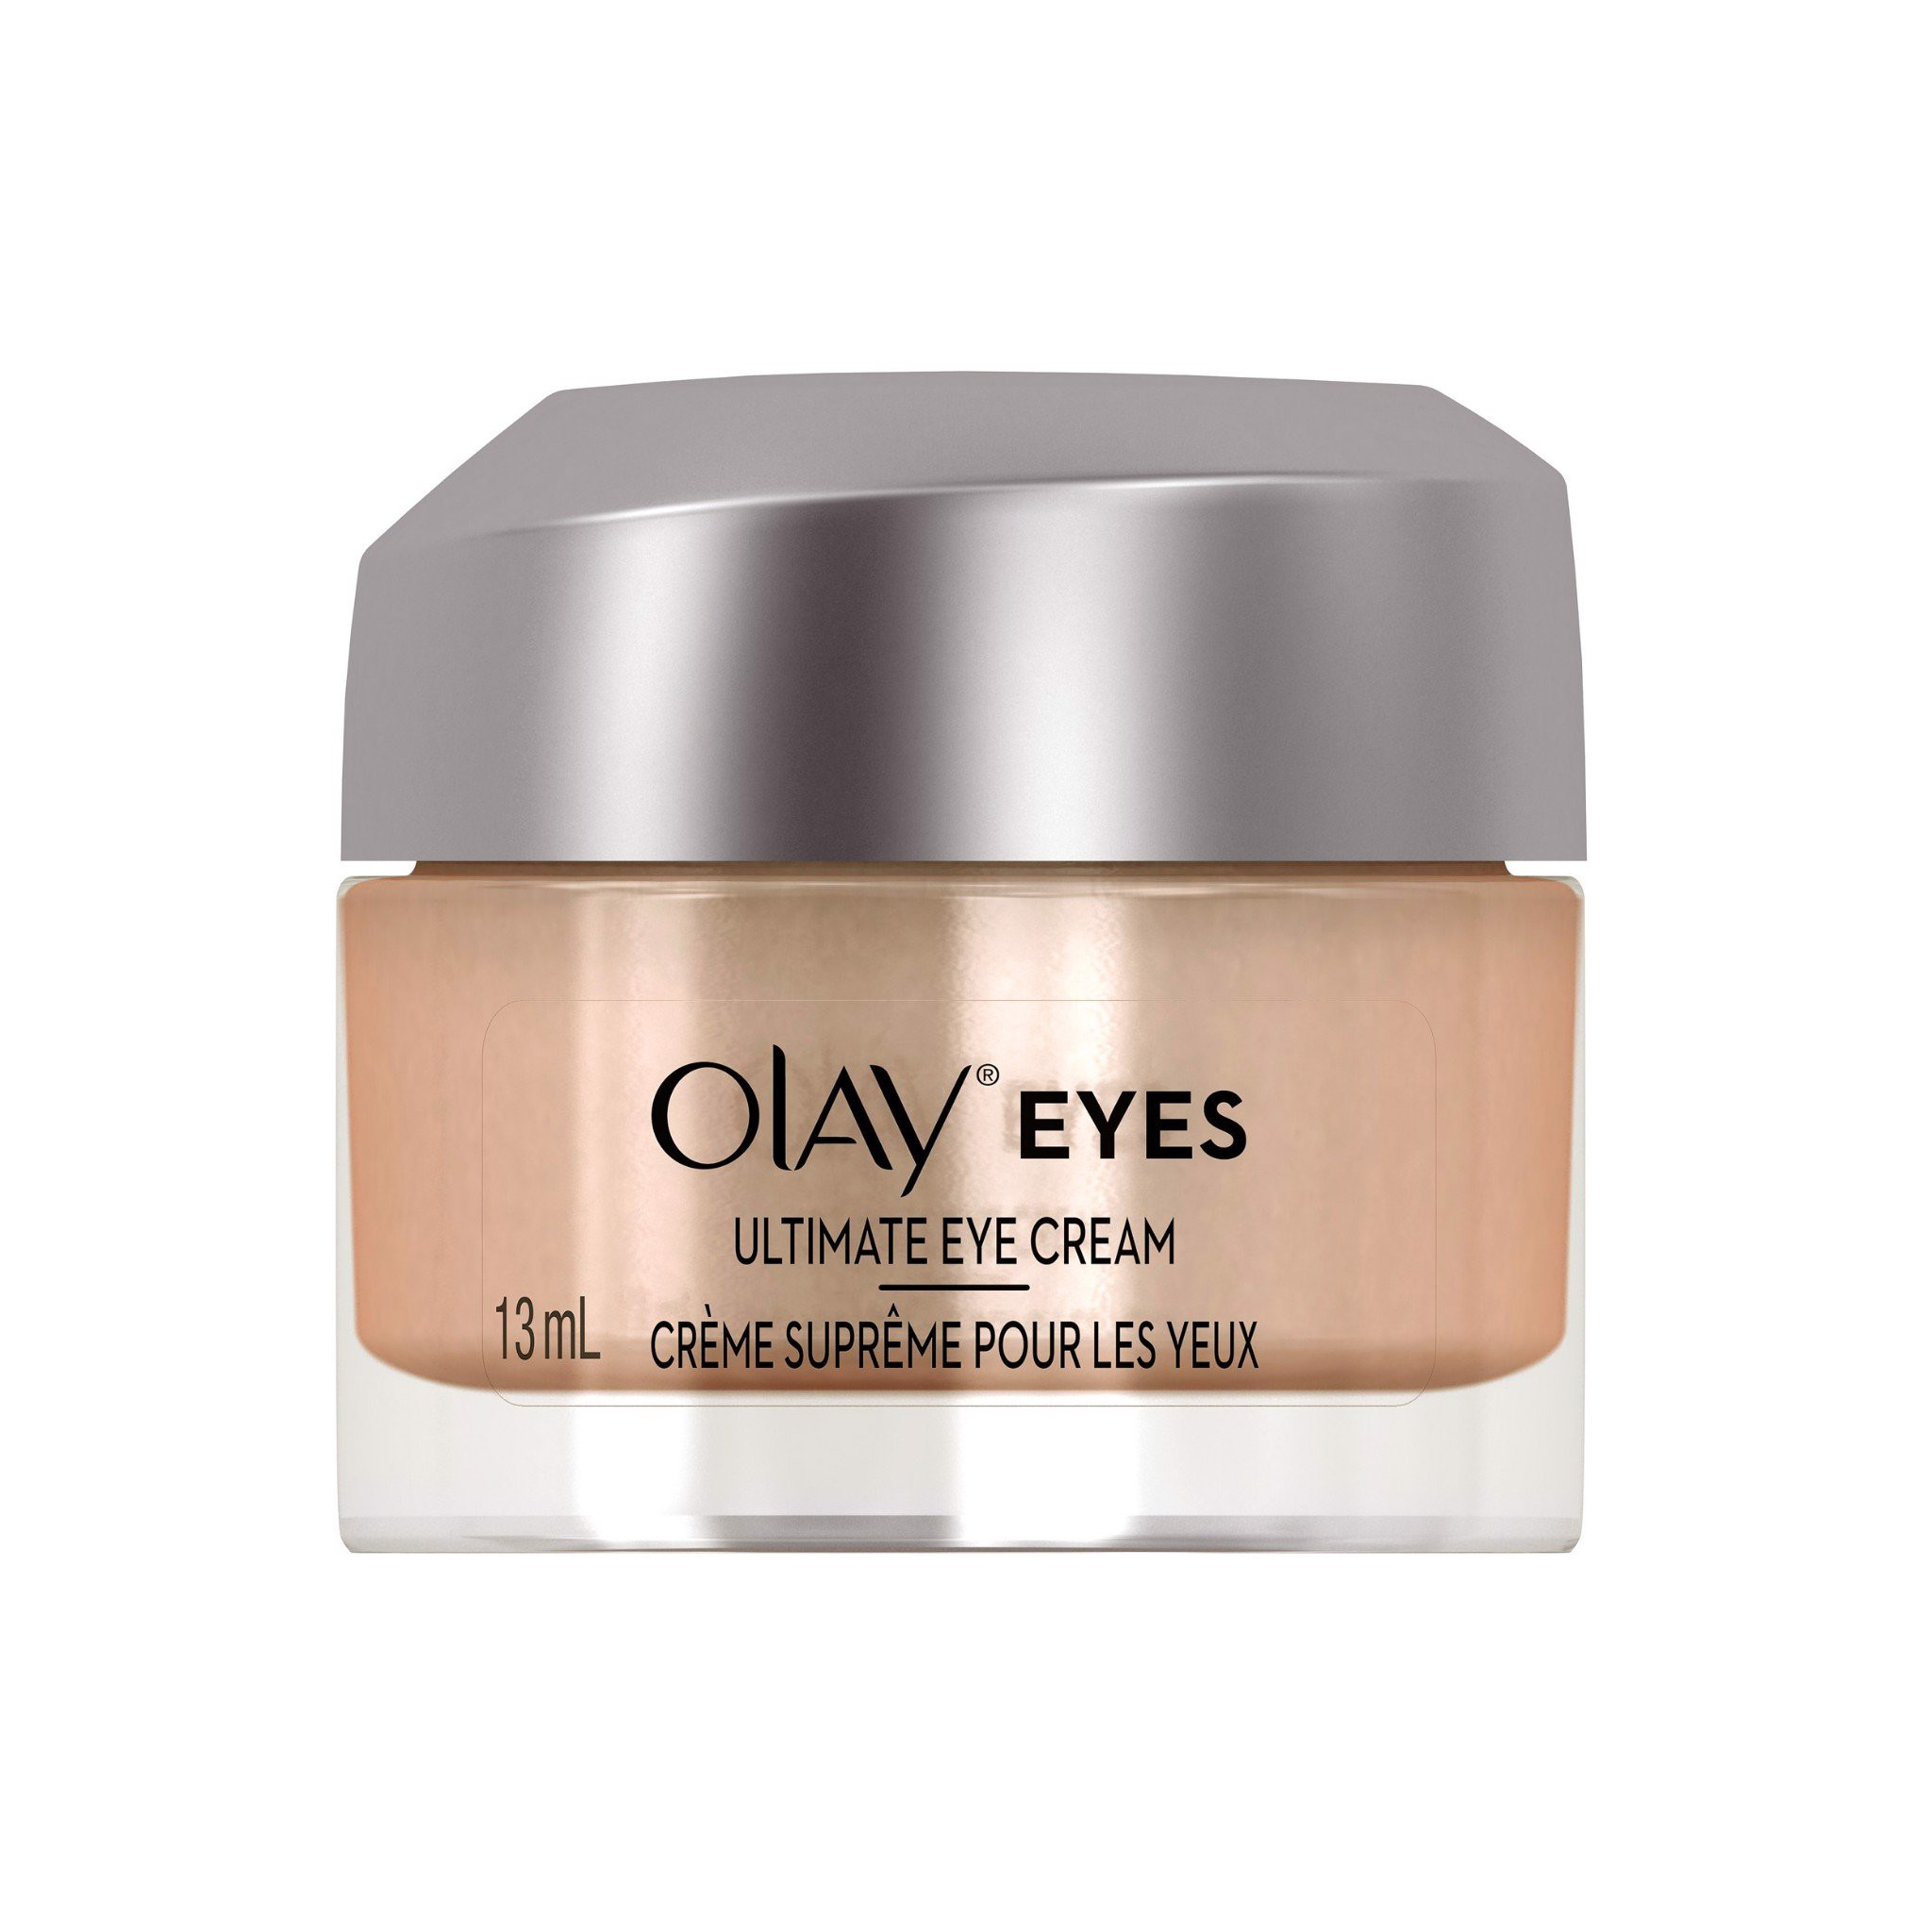 Kem Dưỡng Mắt Olay Eyes Ultimate Eye Cream For Dark Circles, Wrinkles & Puffiness 13ml